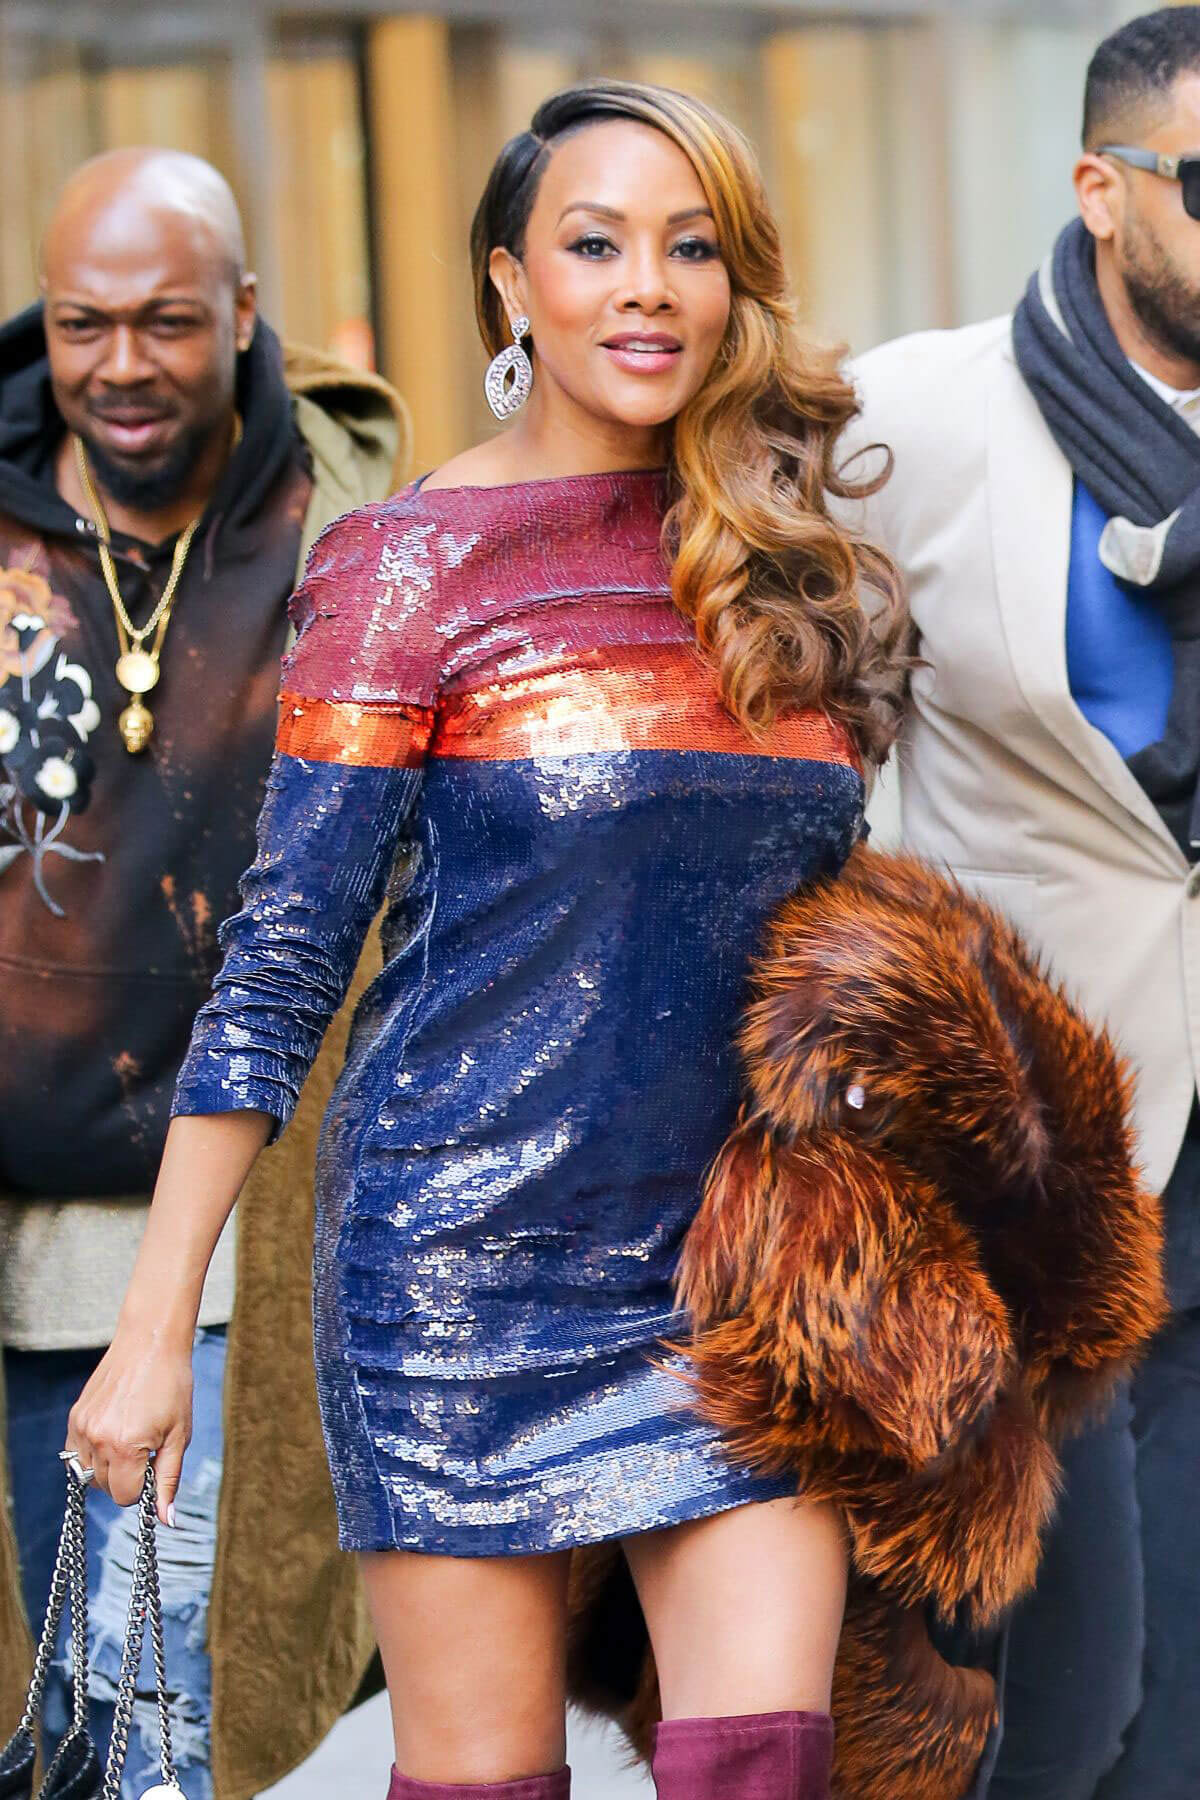 Vivica Fox leaving Siriusxm Radio in New York